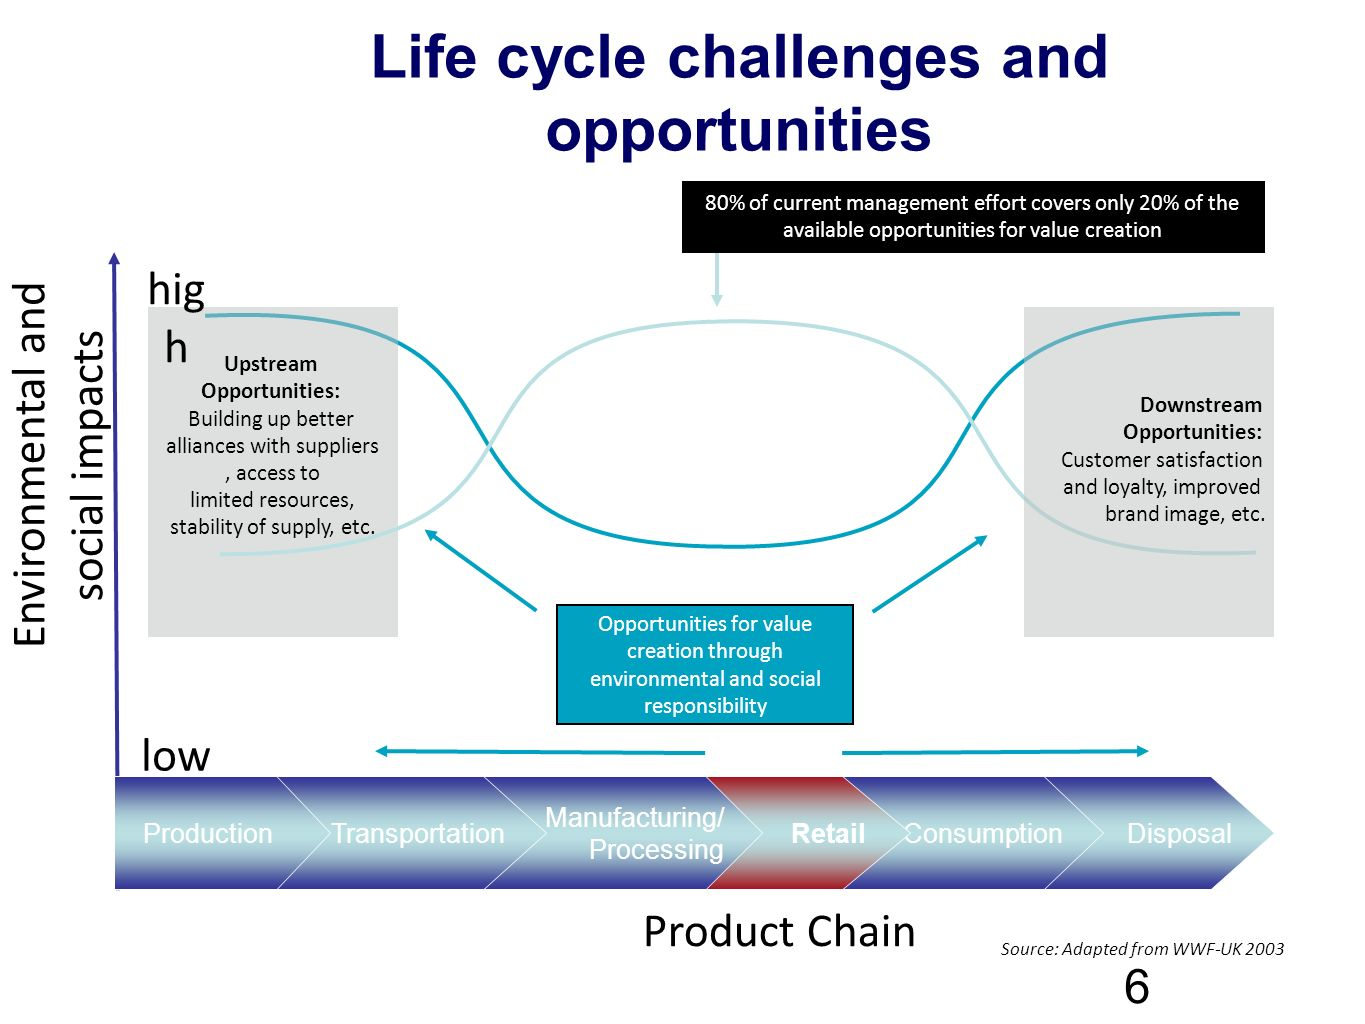 Life cycle challenges and opportunities